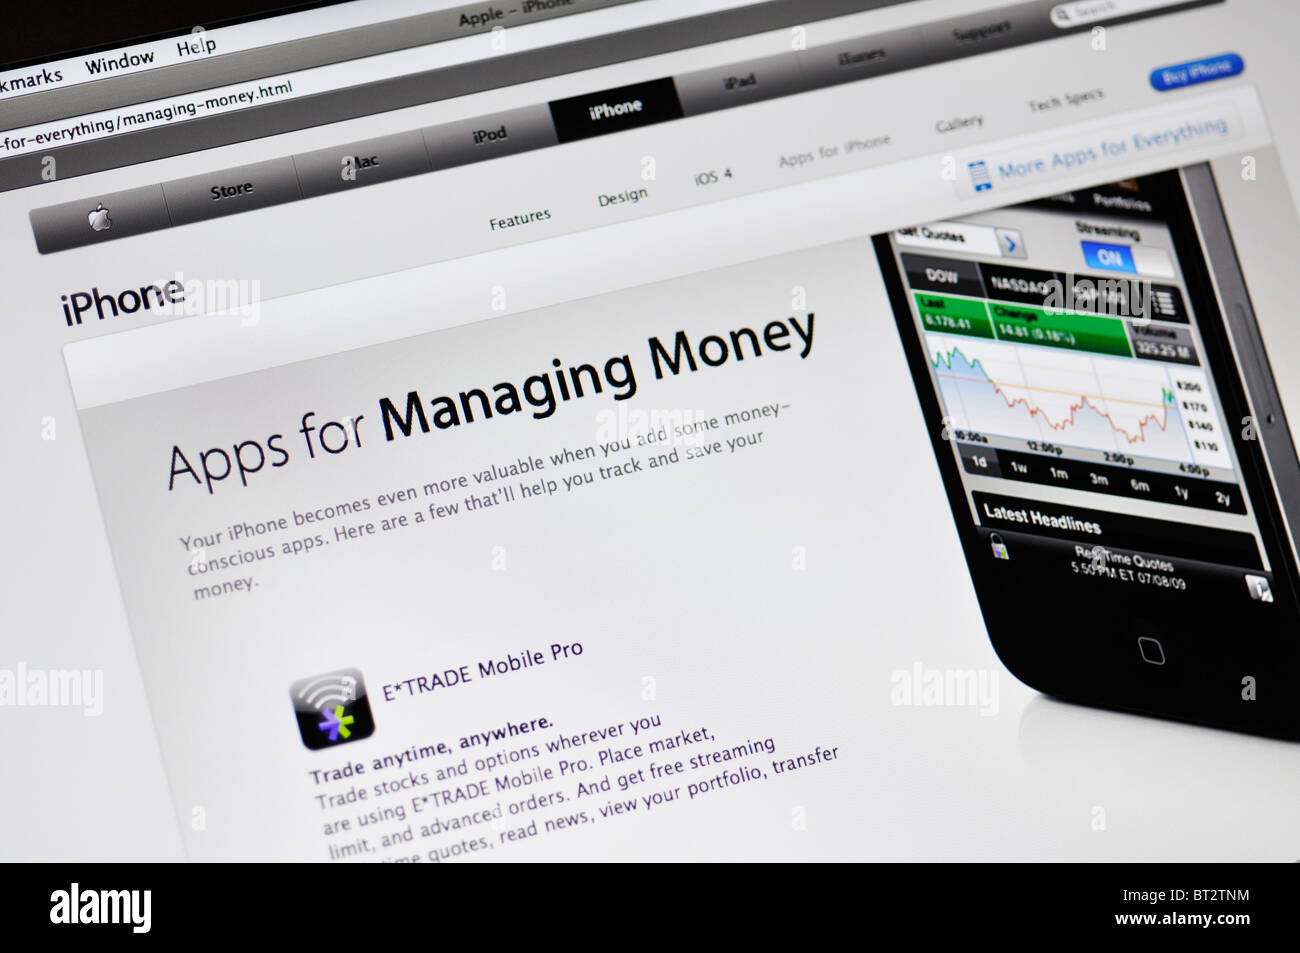 Apple store website showing iPhone applications for managing